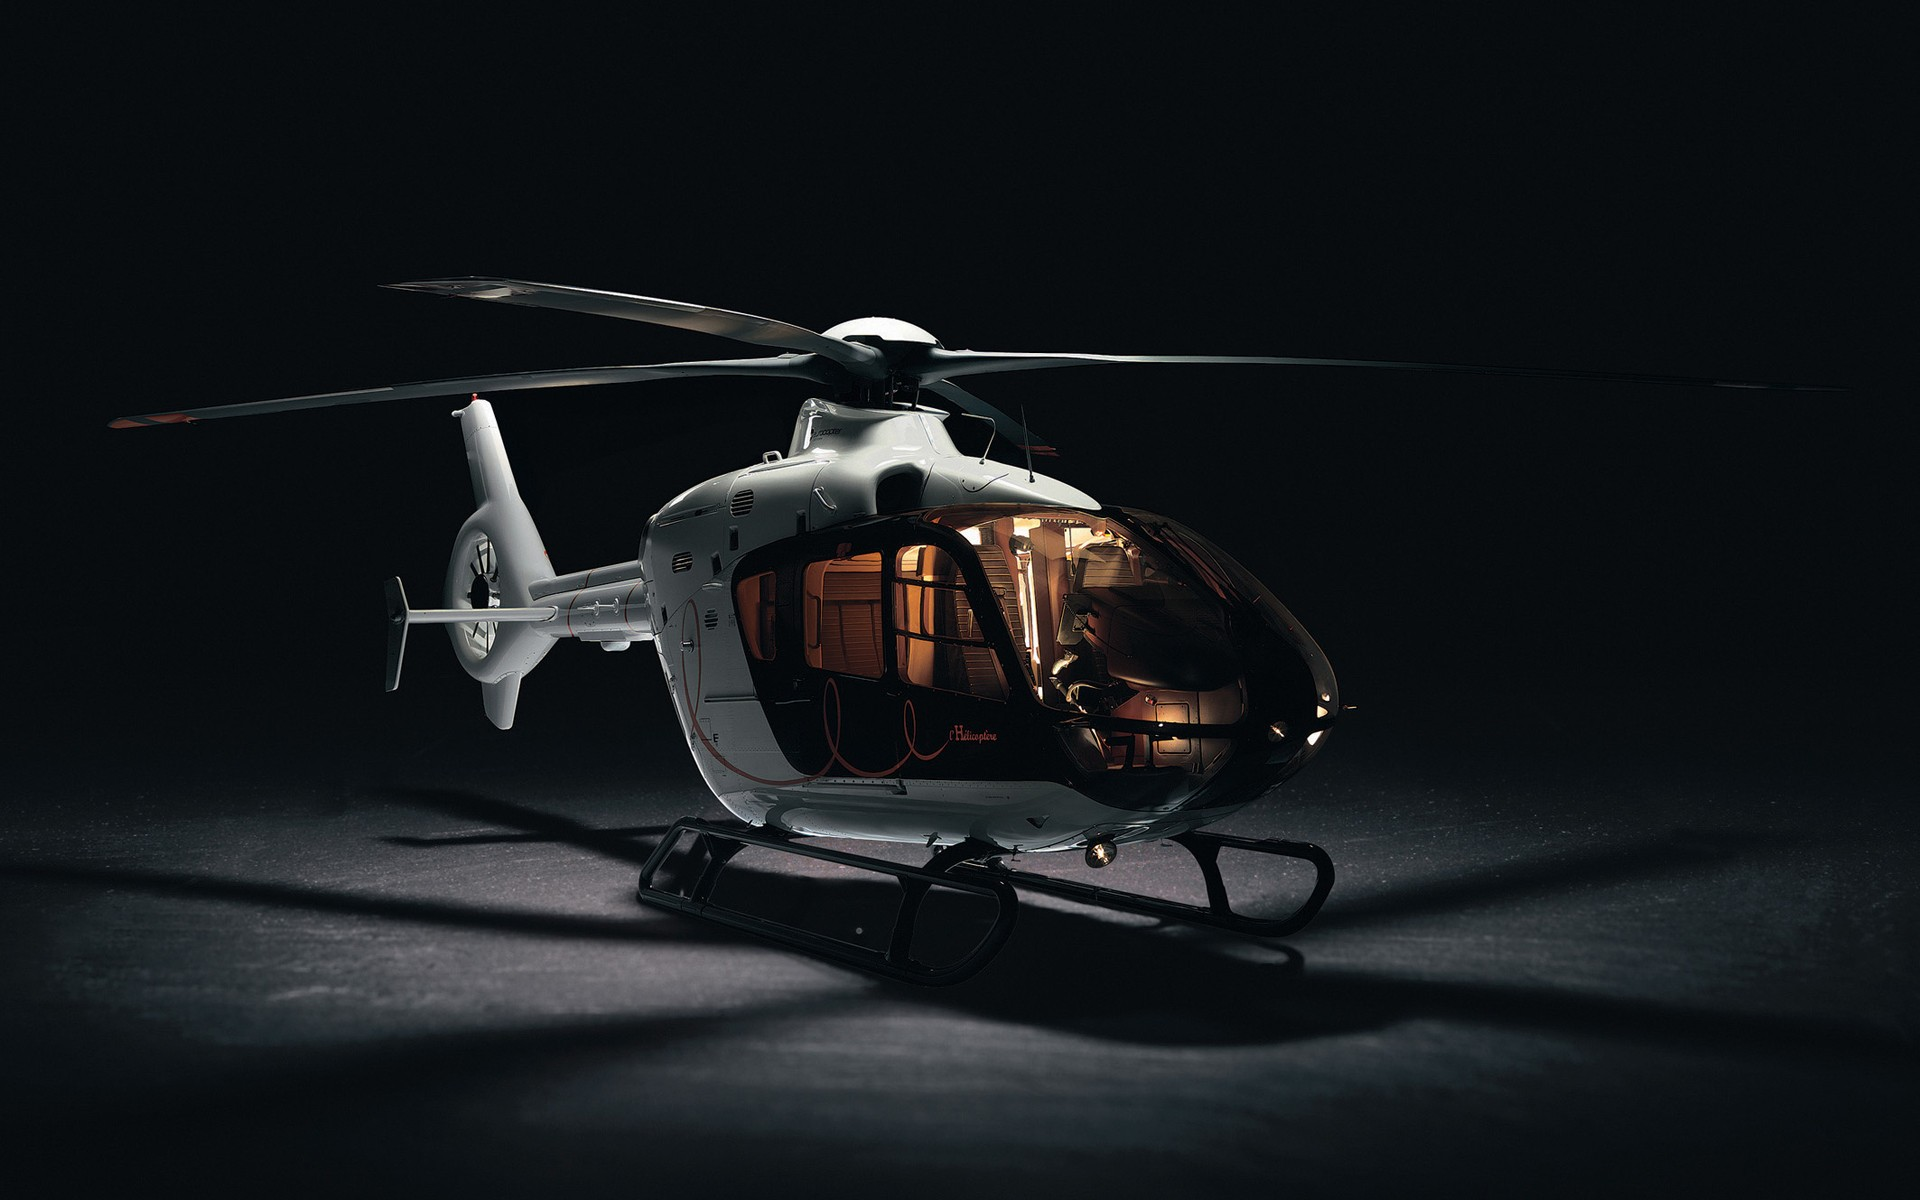 3D model of the helicopter to the desktop